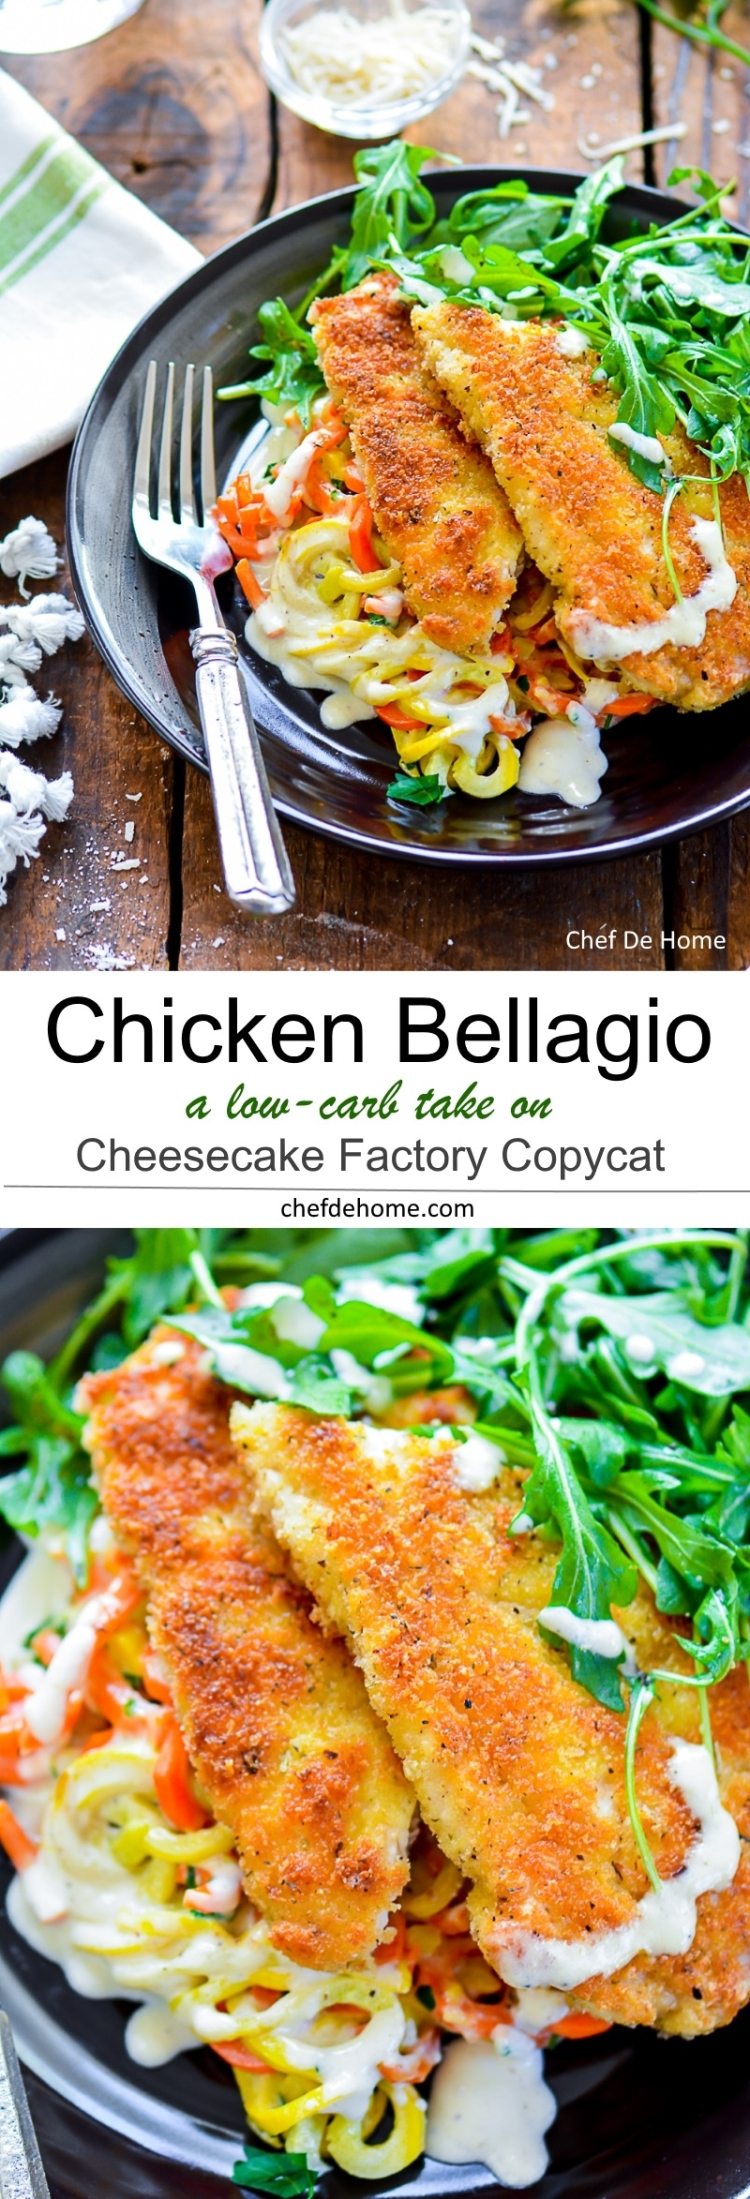 Lightened up Low Carb Cheesecake Factory Copycat Chicken Bellagio Dinner at home with creamy low carb squash pasta | chefdehome.com